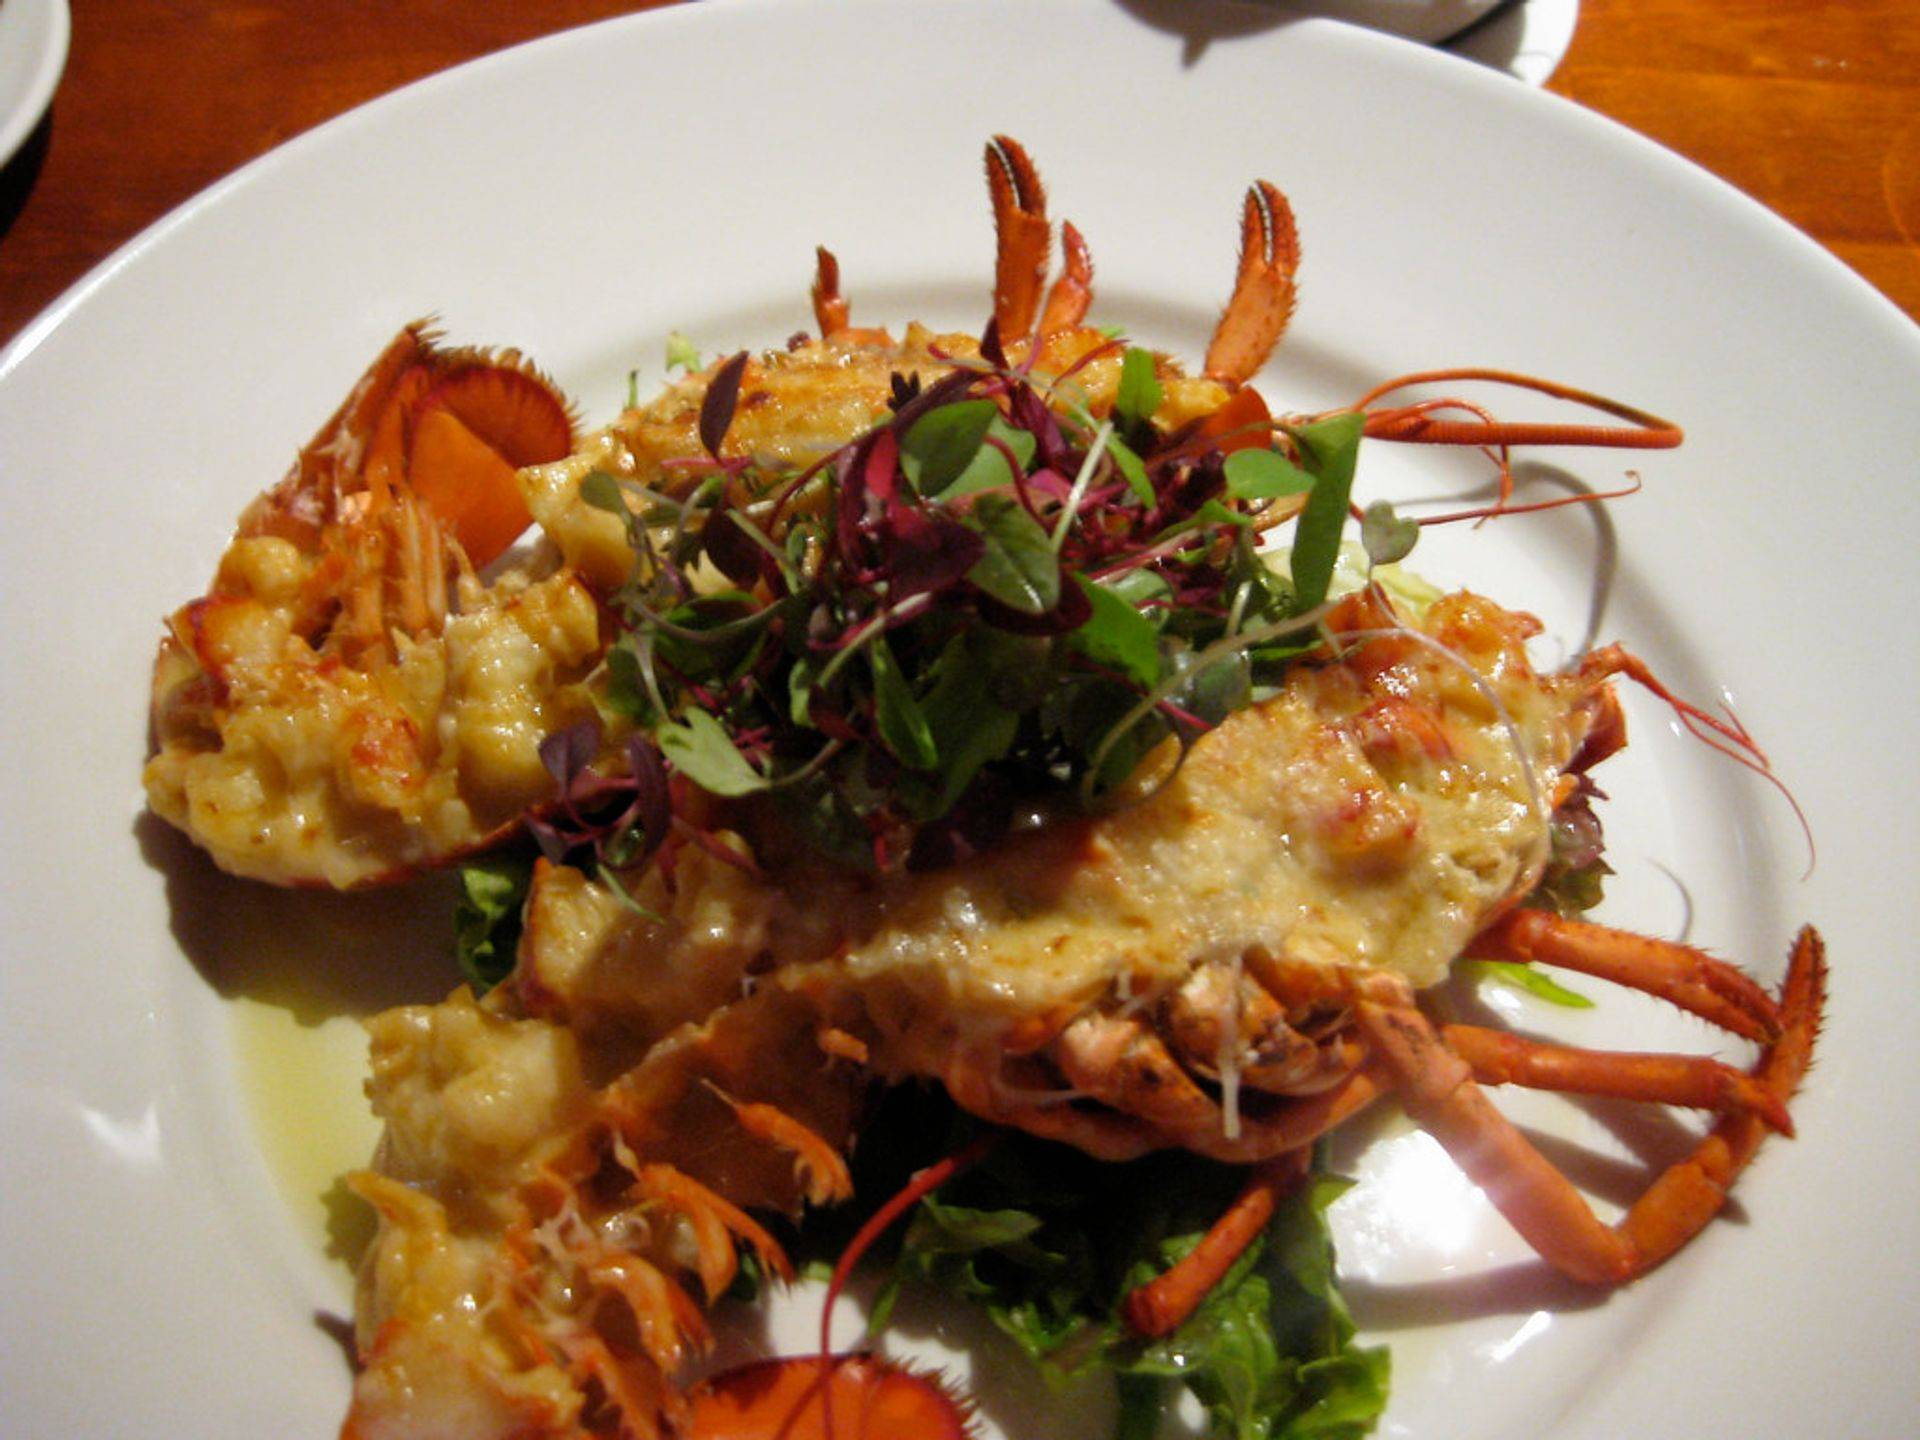 Seafood dishes served with delicious sides at Figaro